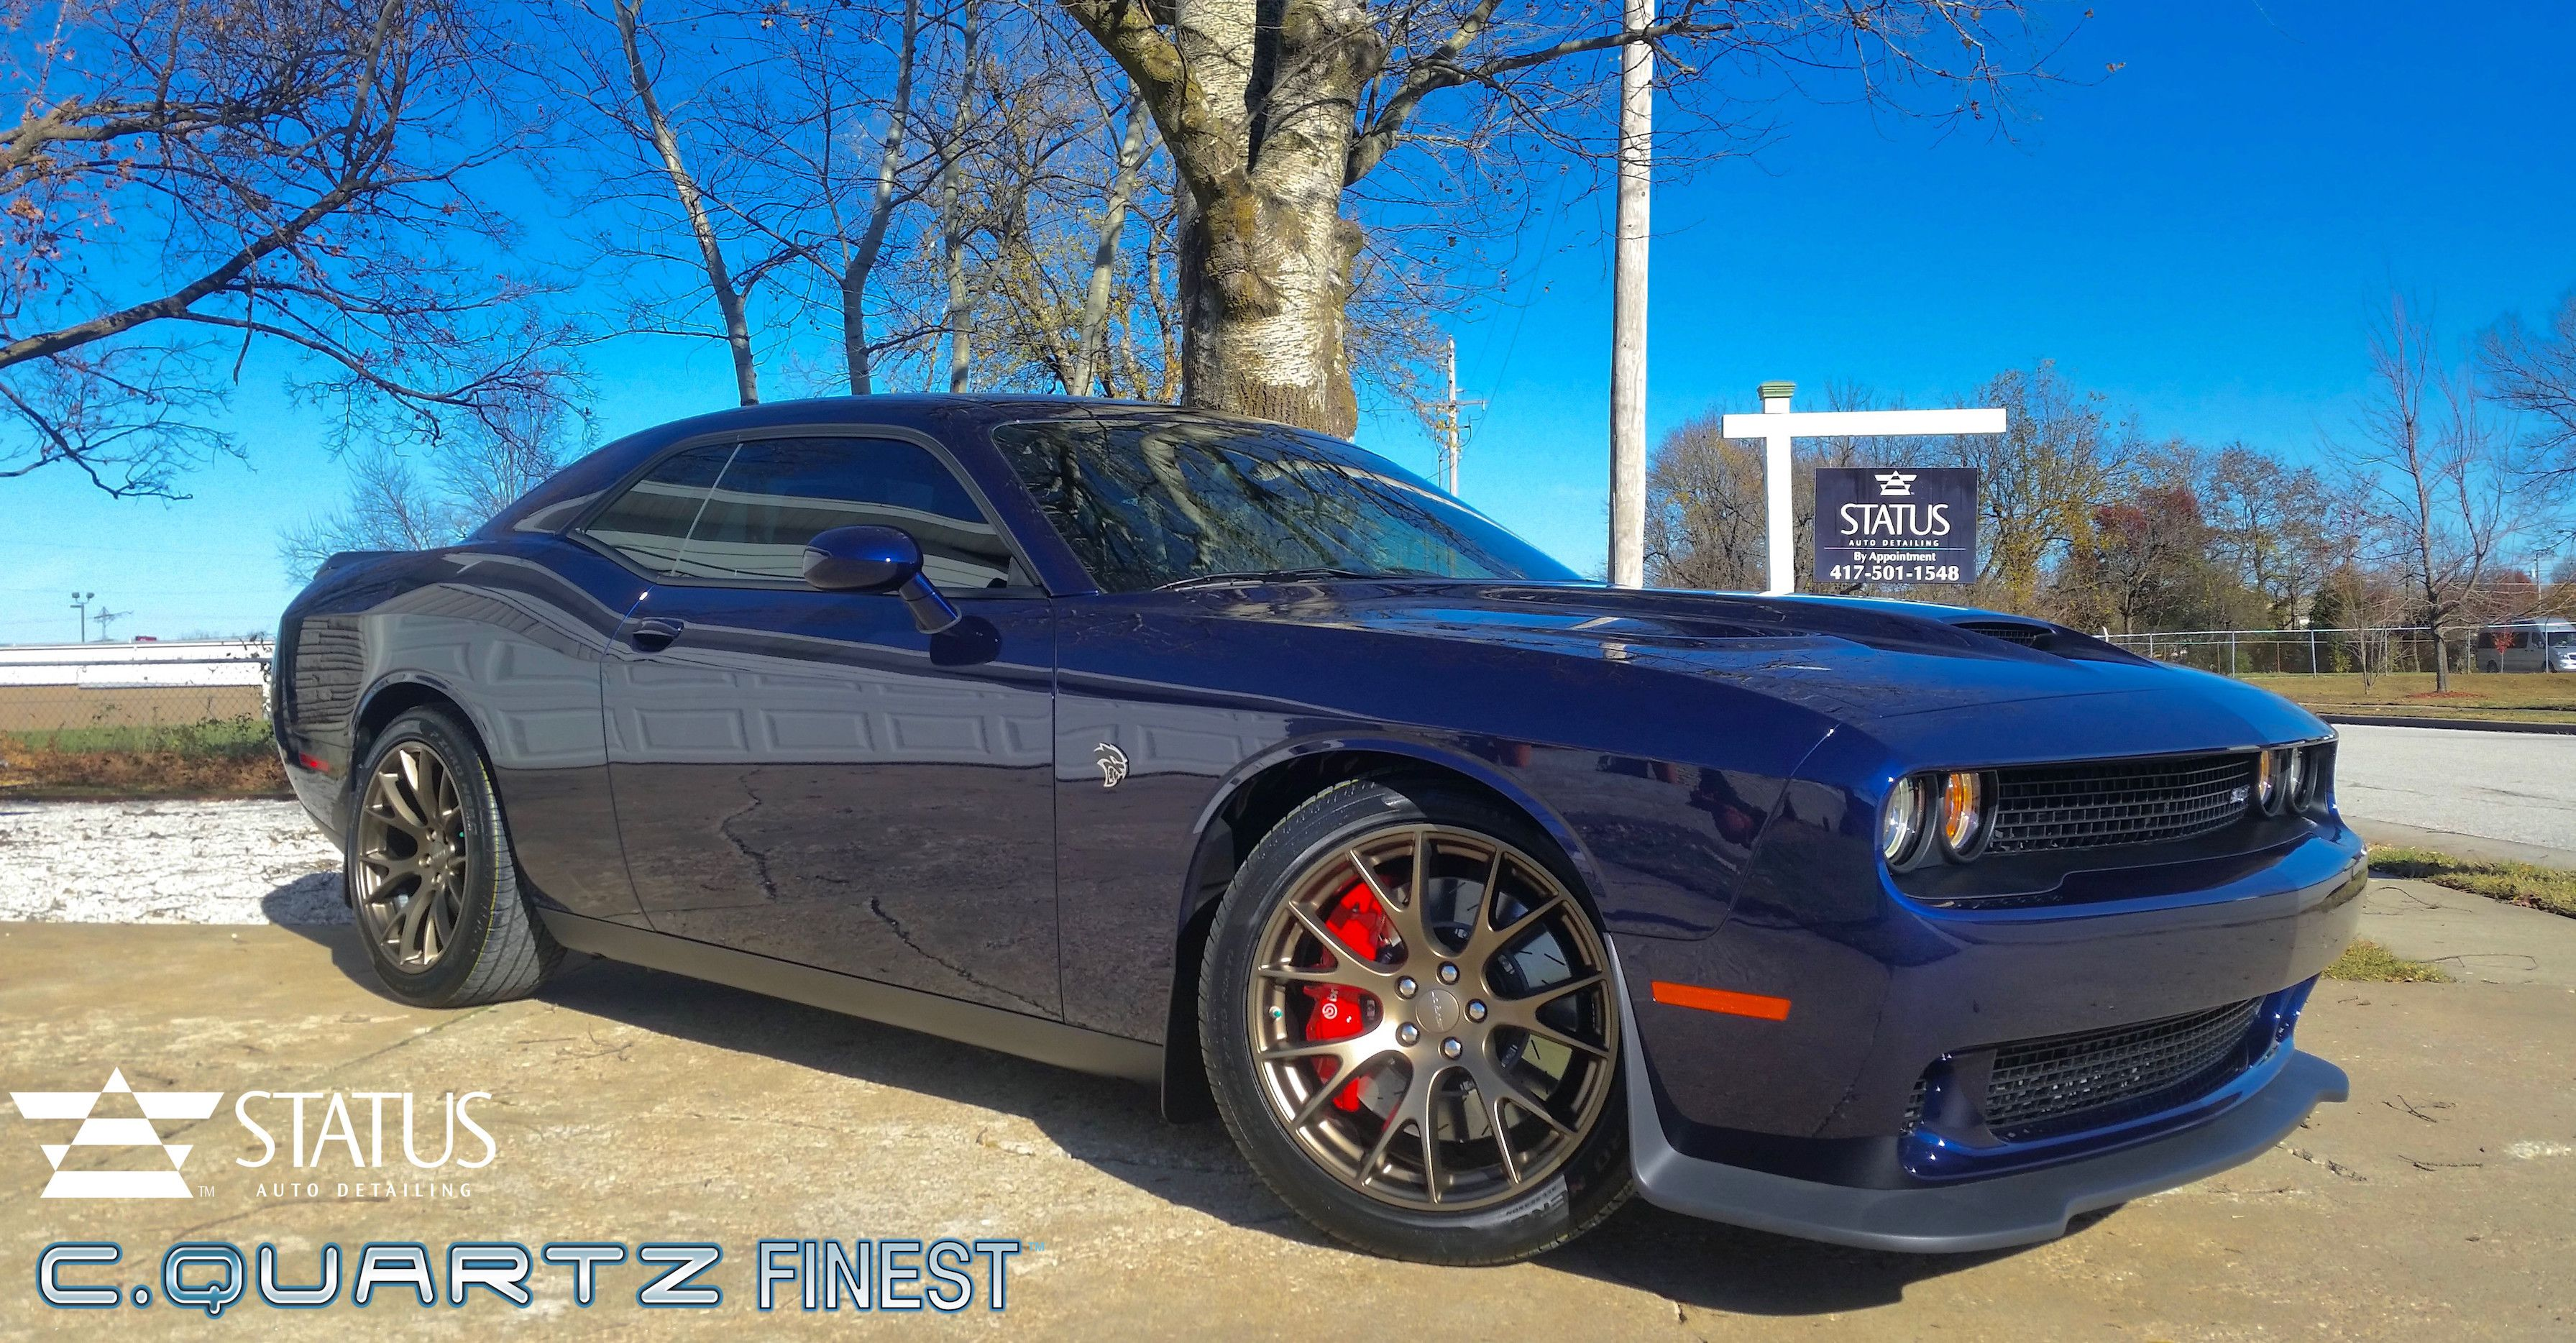 Dodge Challenger Hellcat With Cquartz Finest Ceramic Coating For Years Of Protection Dodgechalle Dodge Challenger Hellcat Hellcat Challenger Dodge Challenger